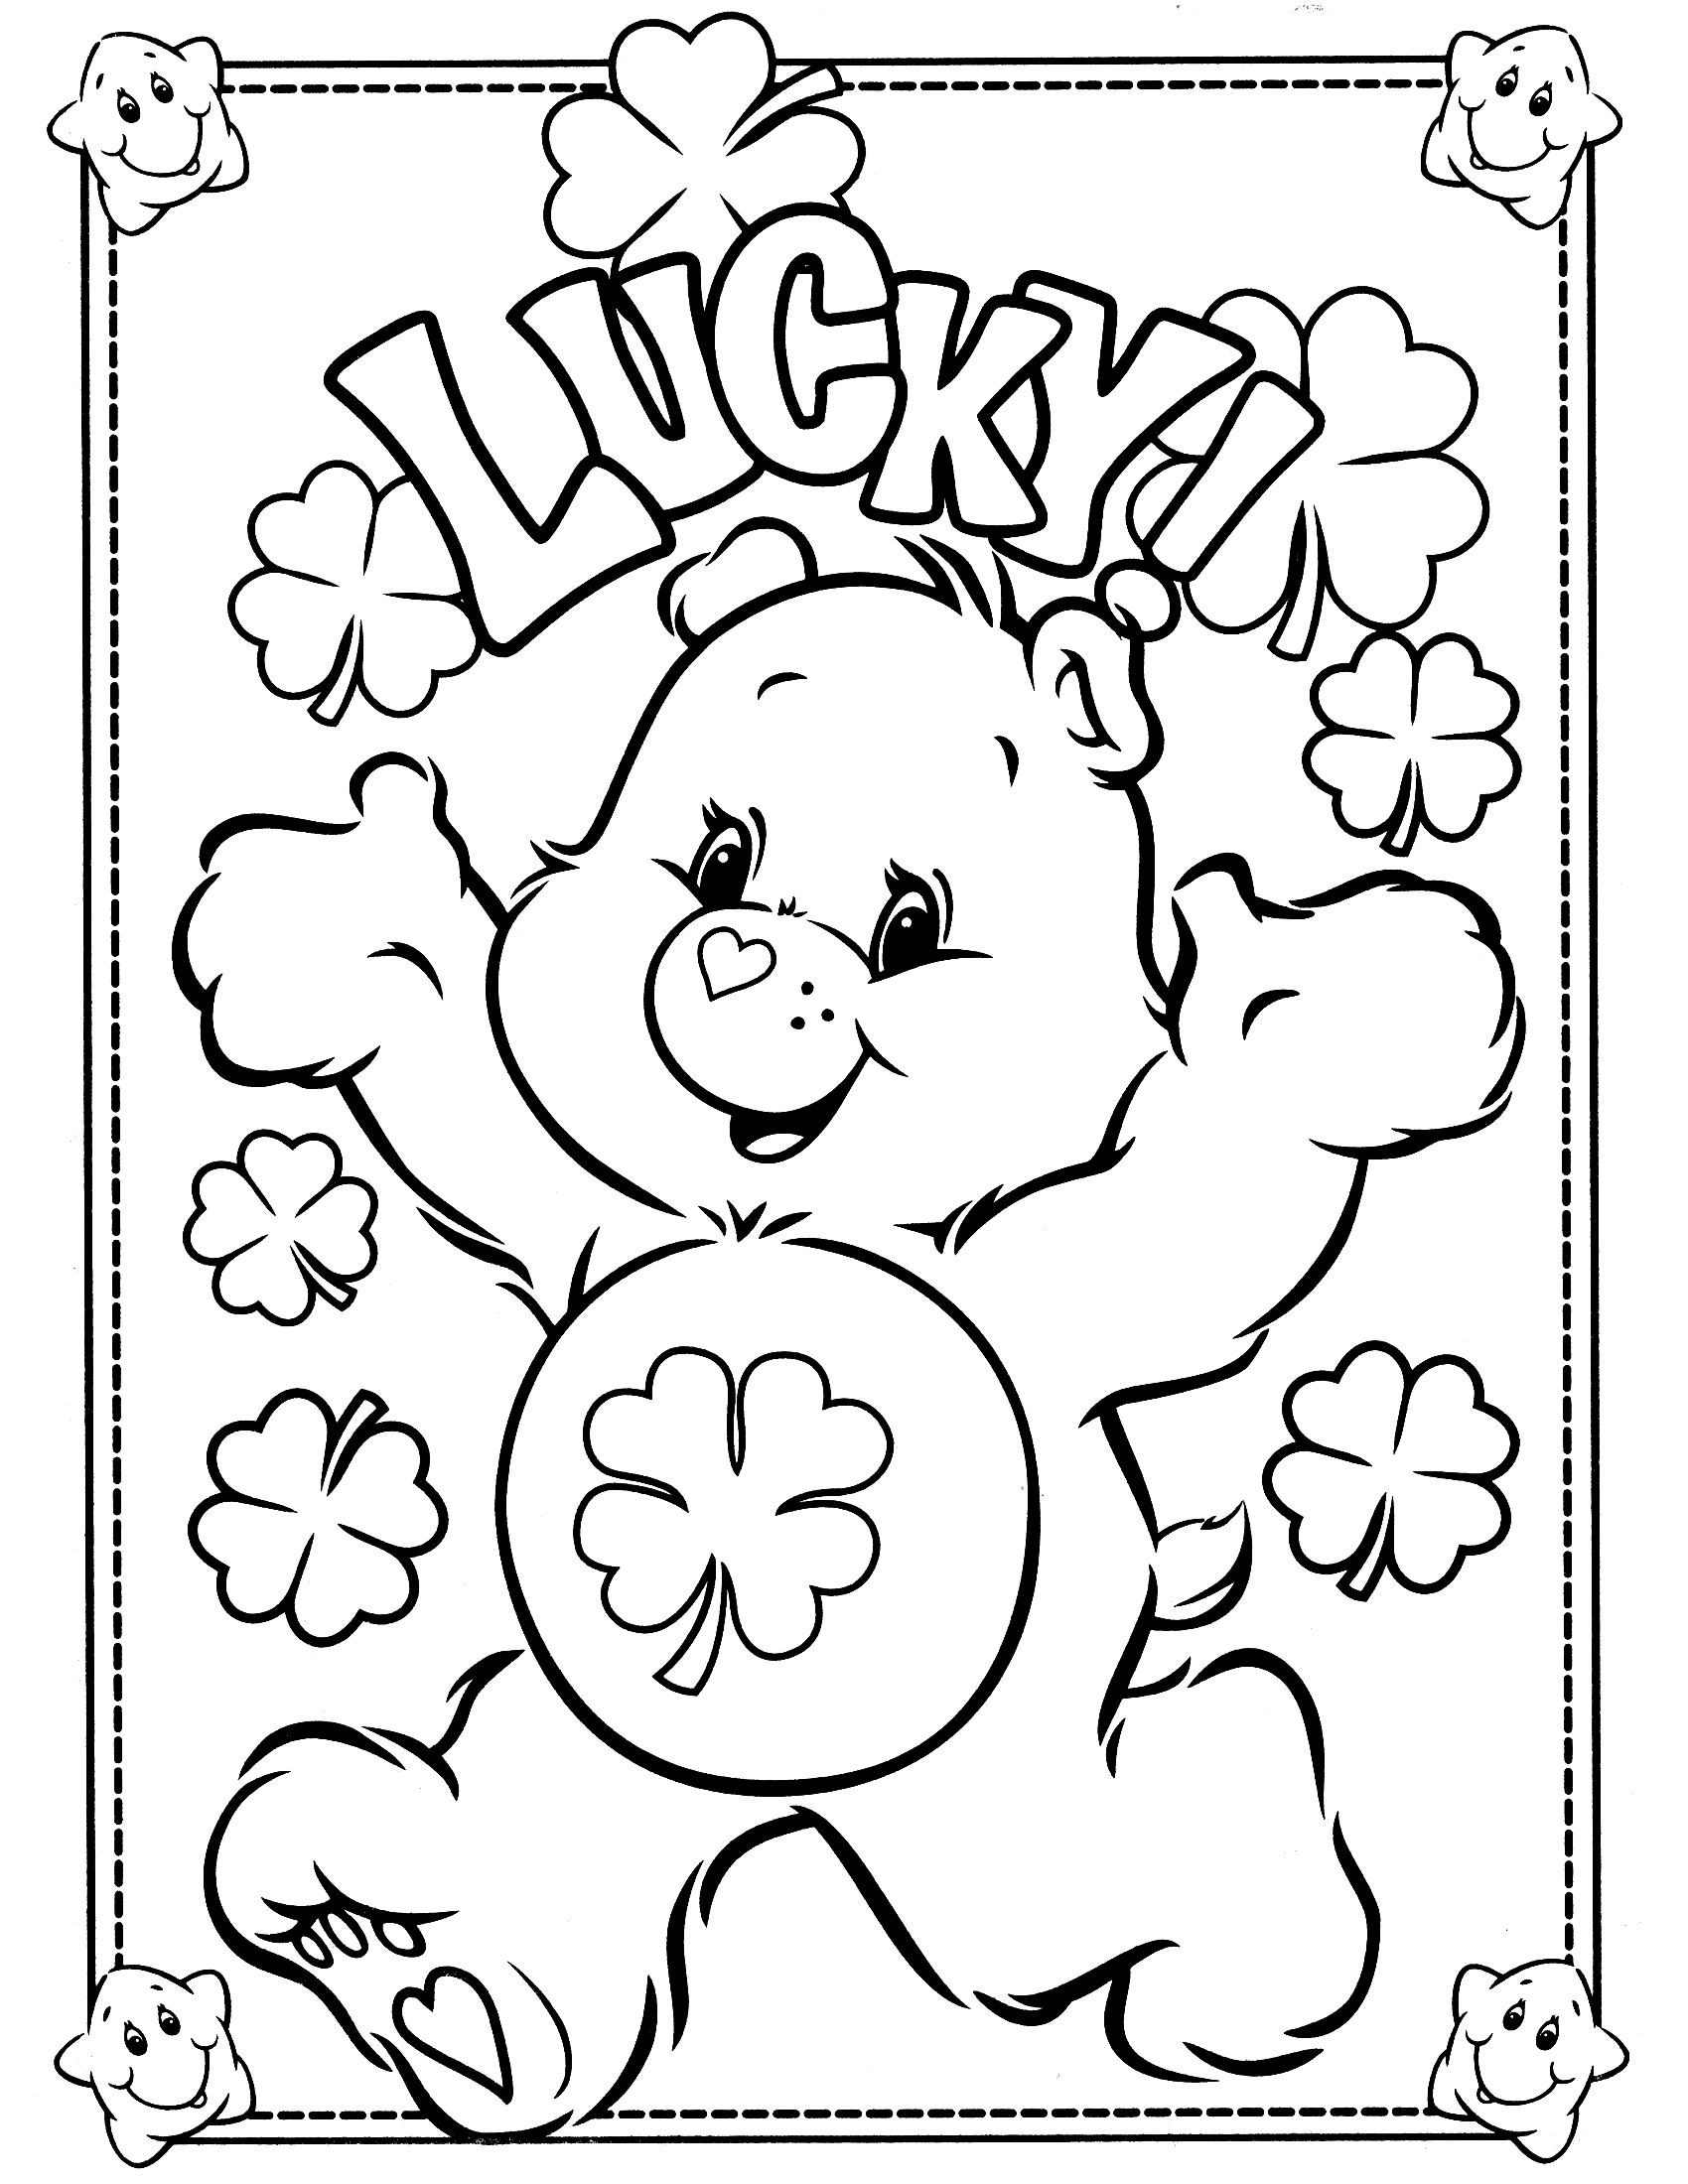 the care bears coloring pages - photo#3